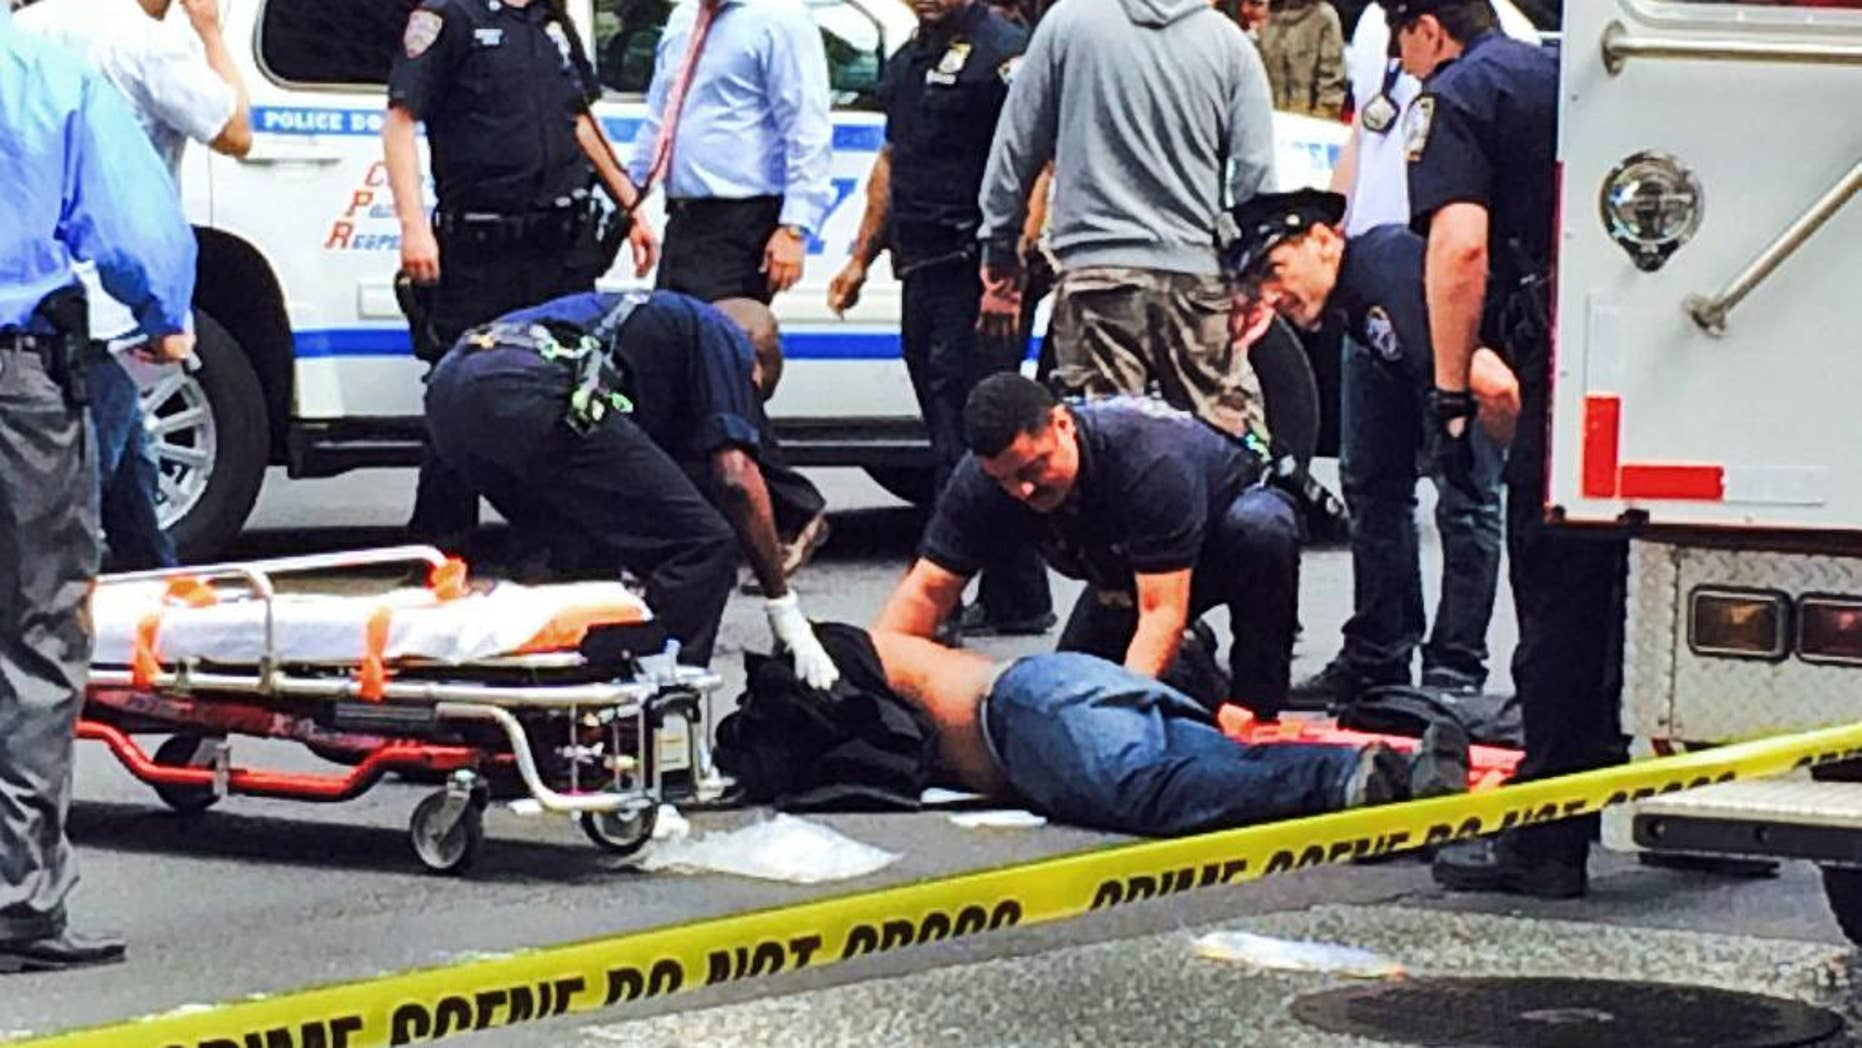 Medical technicians tend to David Baril, who was shot and wounded by police after he pulled a hammer from a bag and lunged at officers who approached him on the street near New York's Penn Station on Wednesday, May 13, 2015. Baril, 30, is suspected of attacking four people with a hammer earlier in the week. (AP Photo/Raj Mathura)